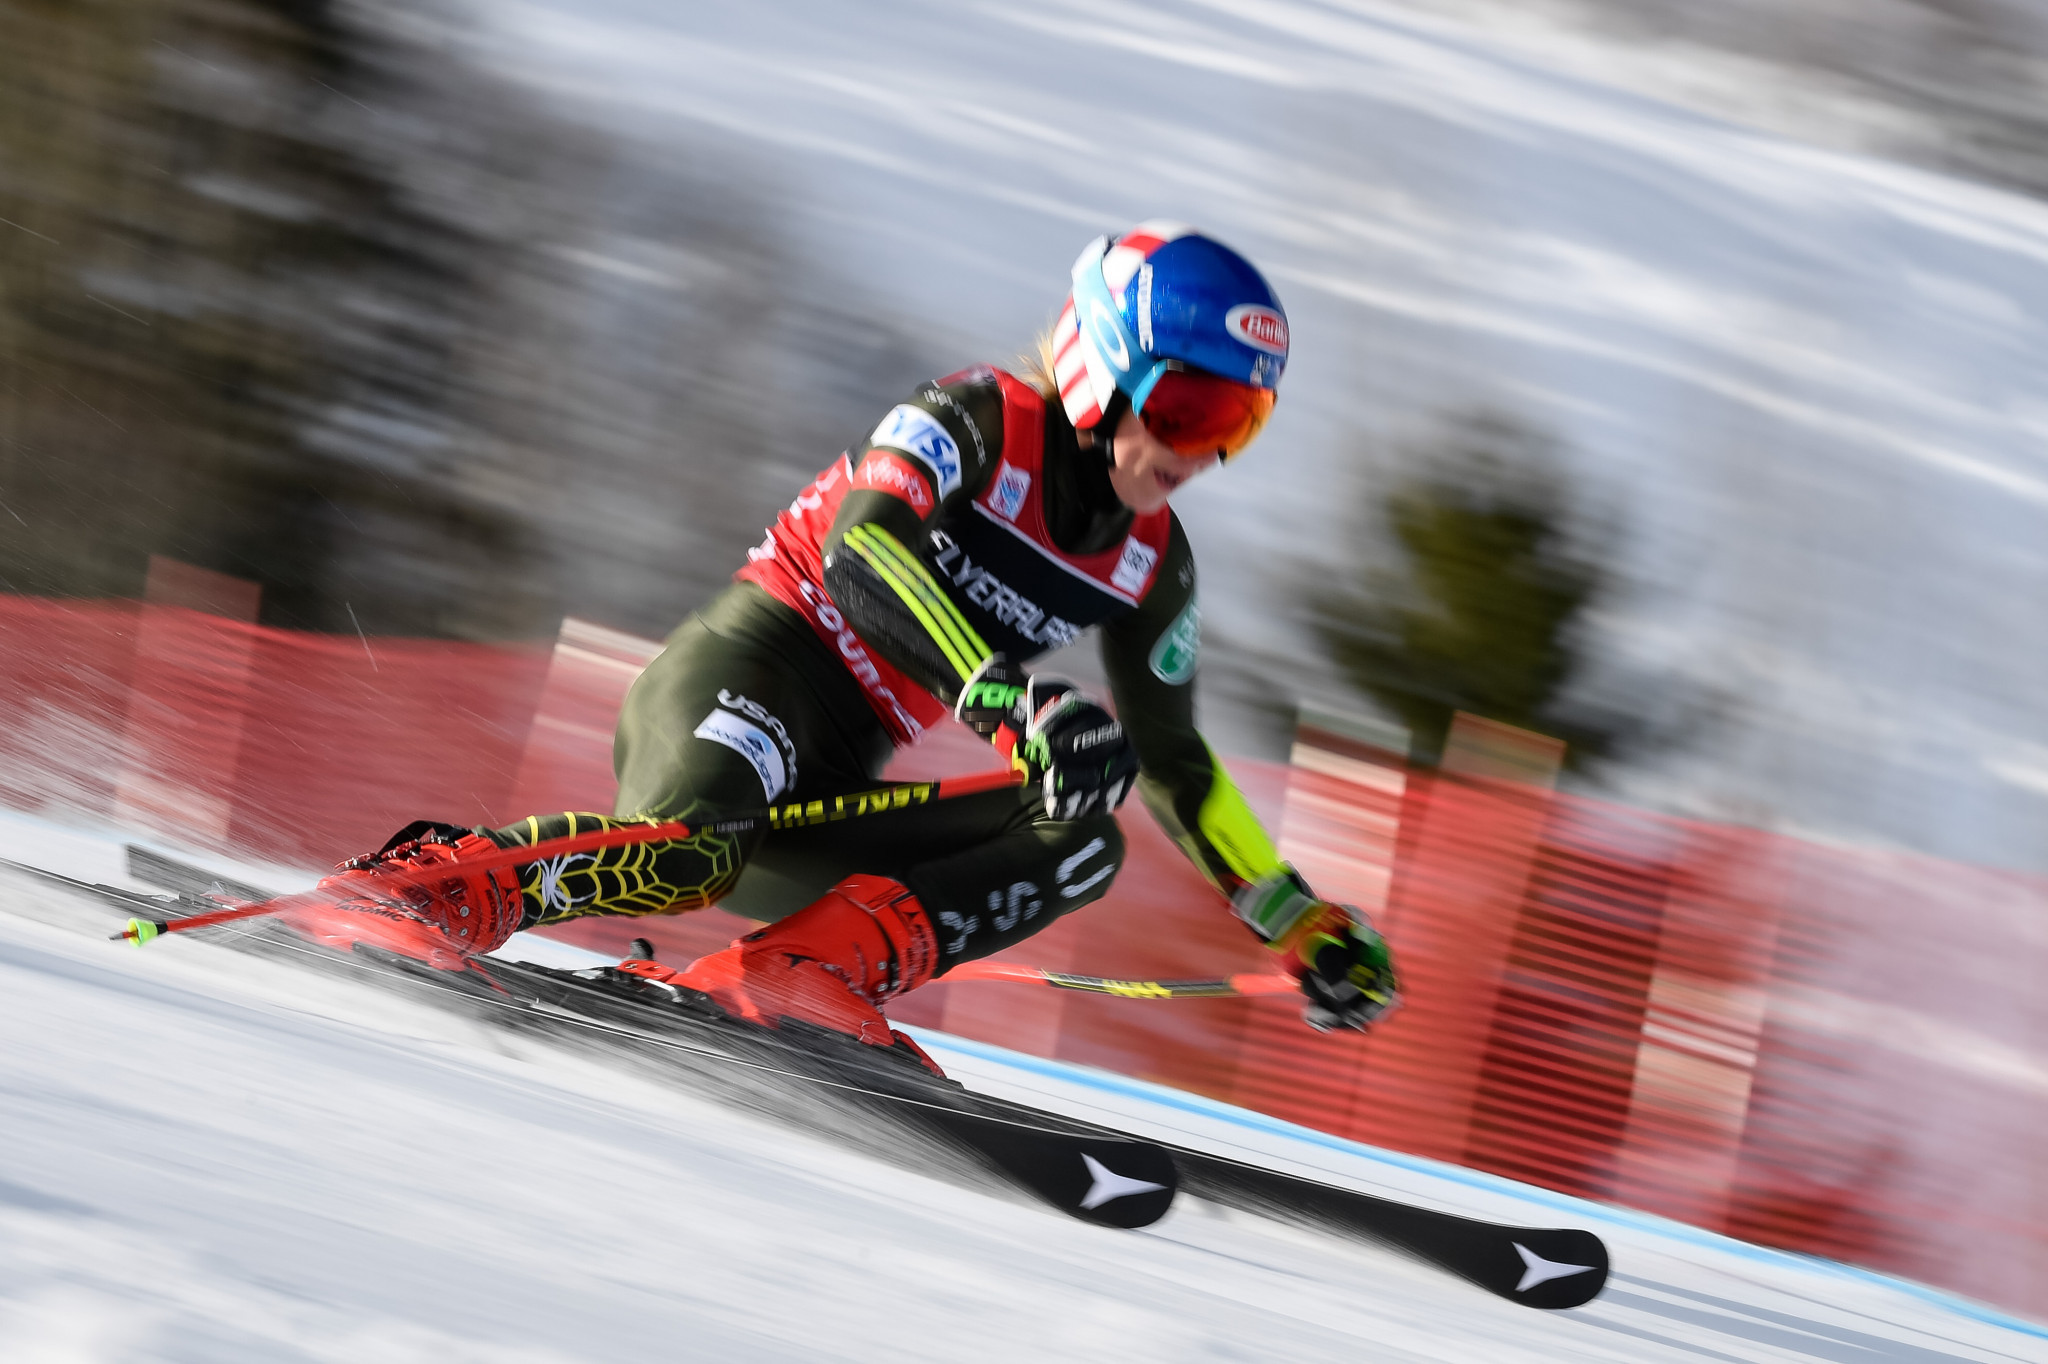 Mikaela Shiffrin will be aiming to rediscover her best form at the FIS Alpine Skiing World Cup in Lienz ©Getty Images